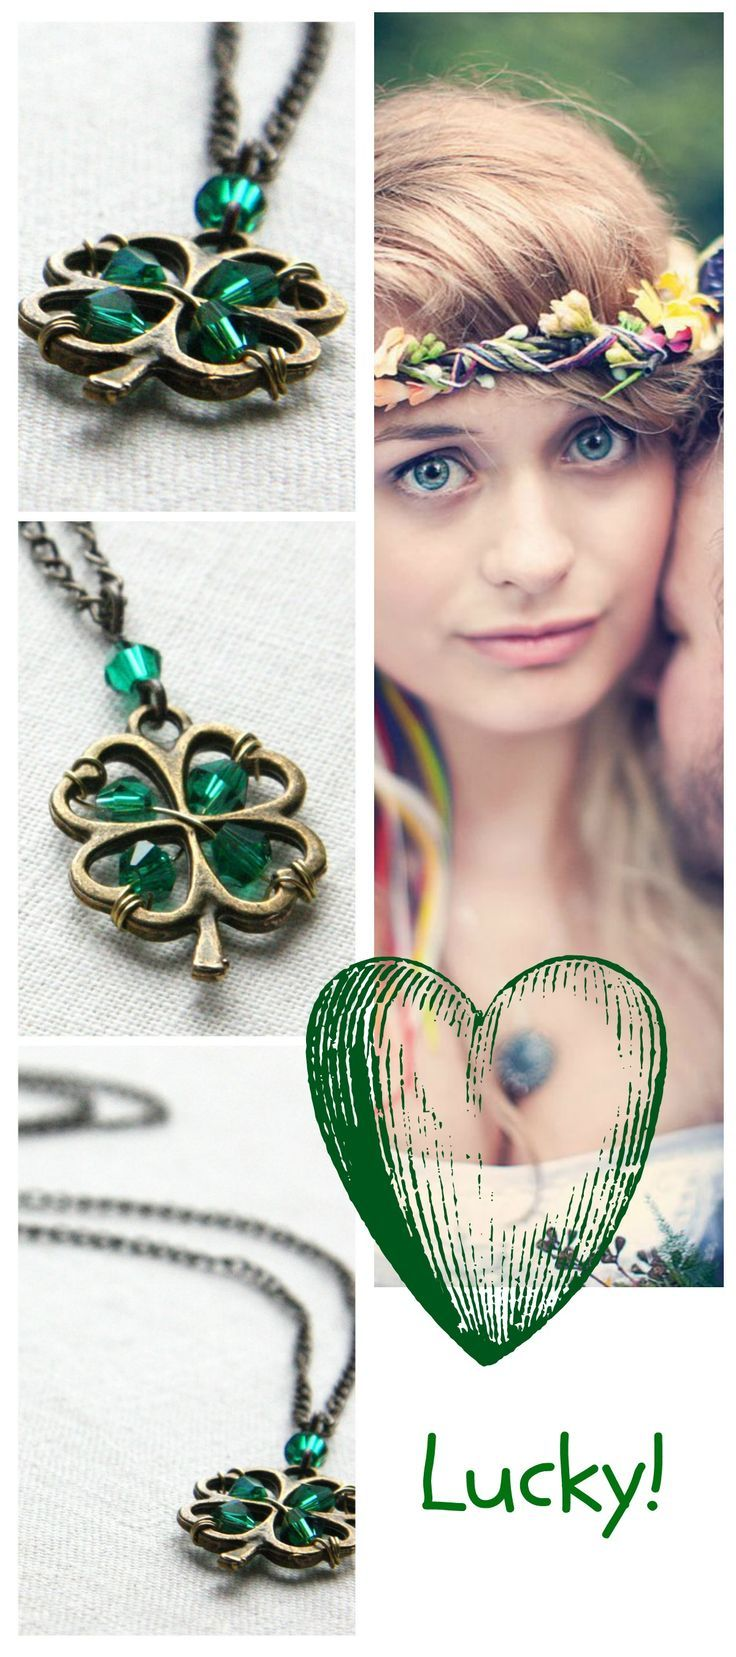 St. Patrick's Day Necklace. Four Leaf Clover Pendant. Irish Shamrock for Good Luck. Green Crystal Necklace, Celebrate Spring #fbloggers #lbloggers #accessories #jewelrygram